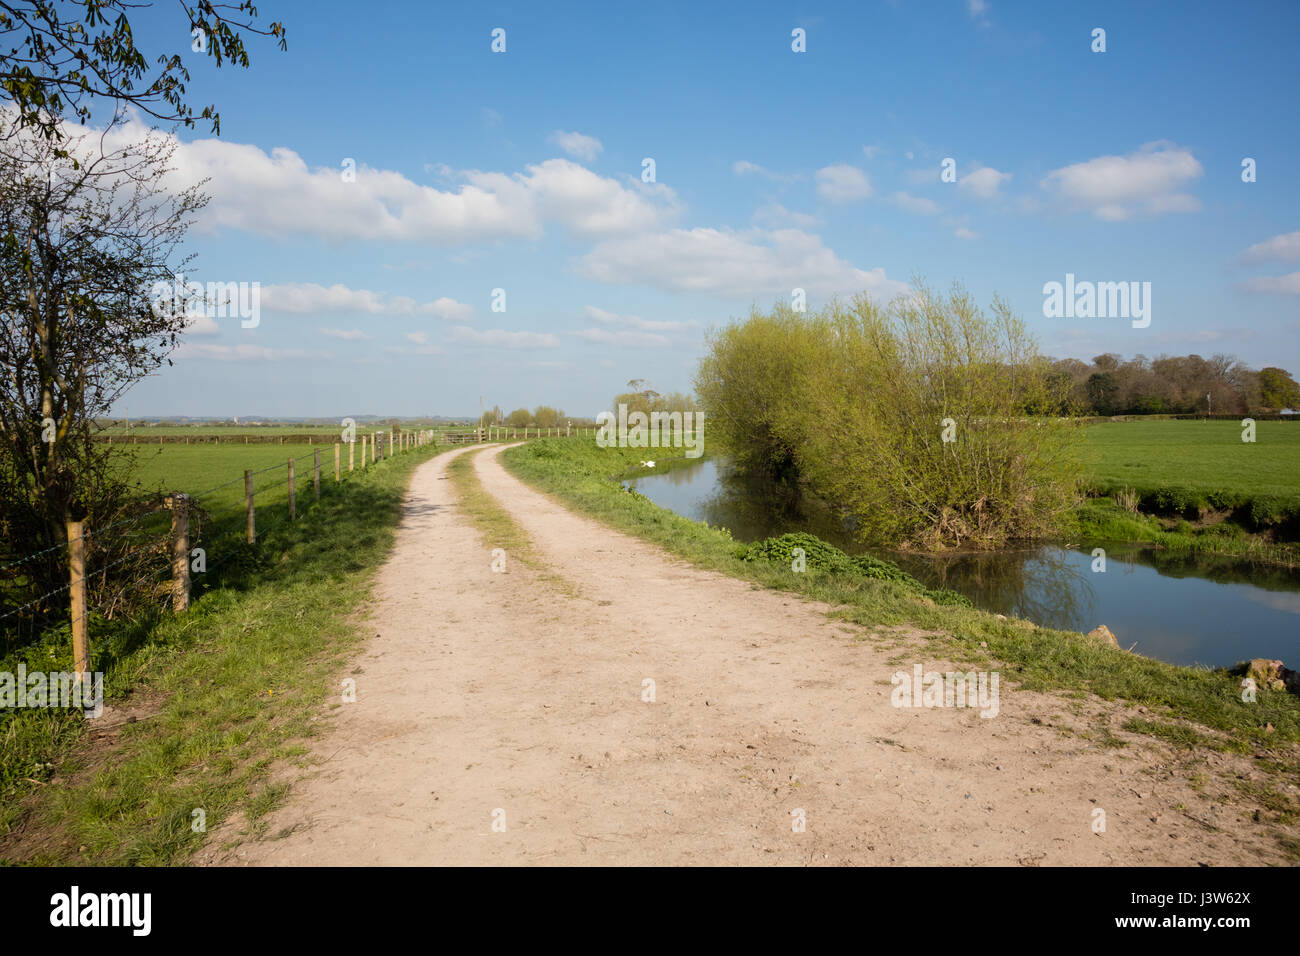 River Parrett and towpath cut through farmland in Somerset England - Stock Image